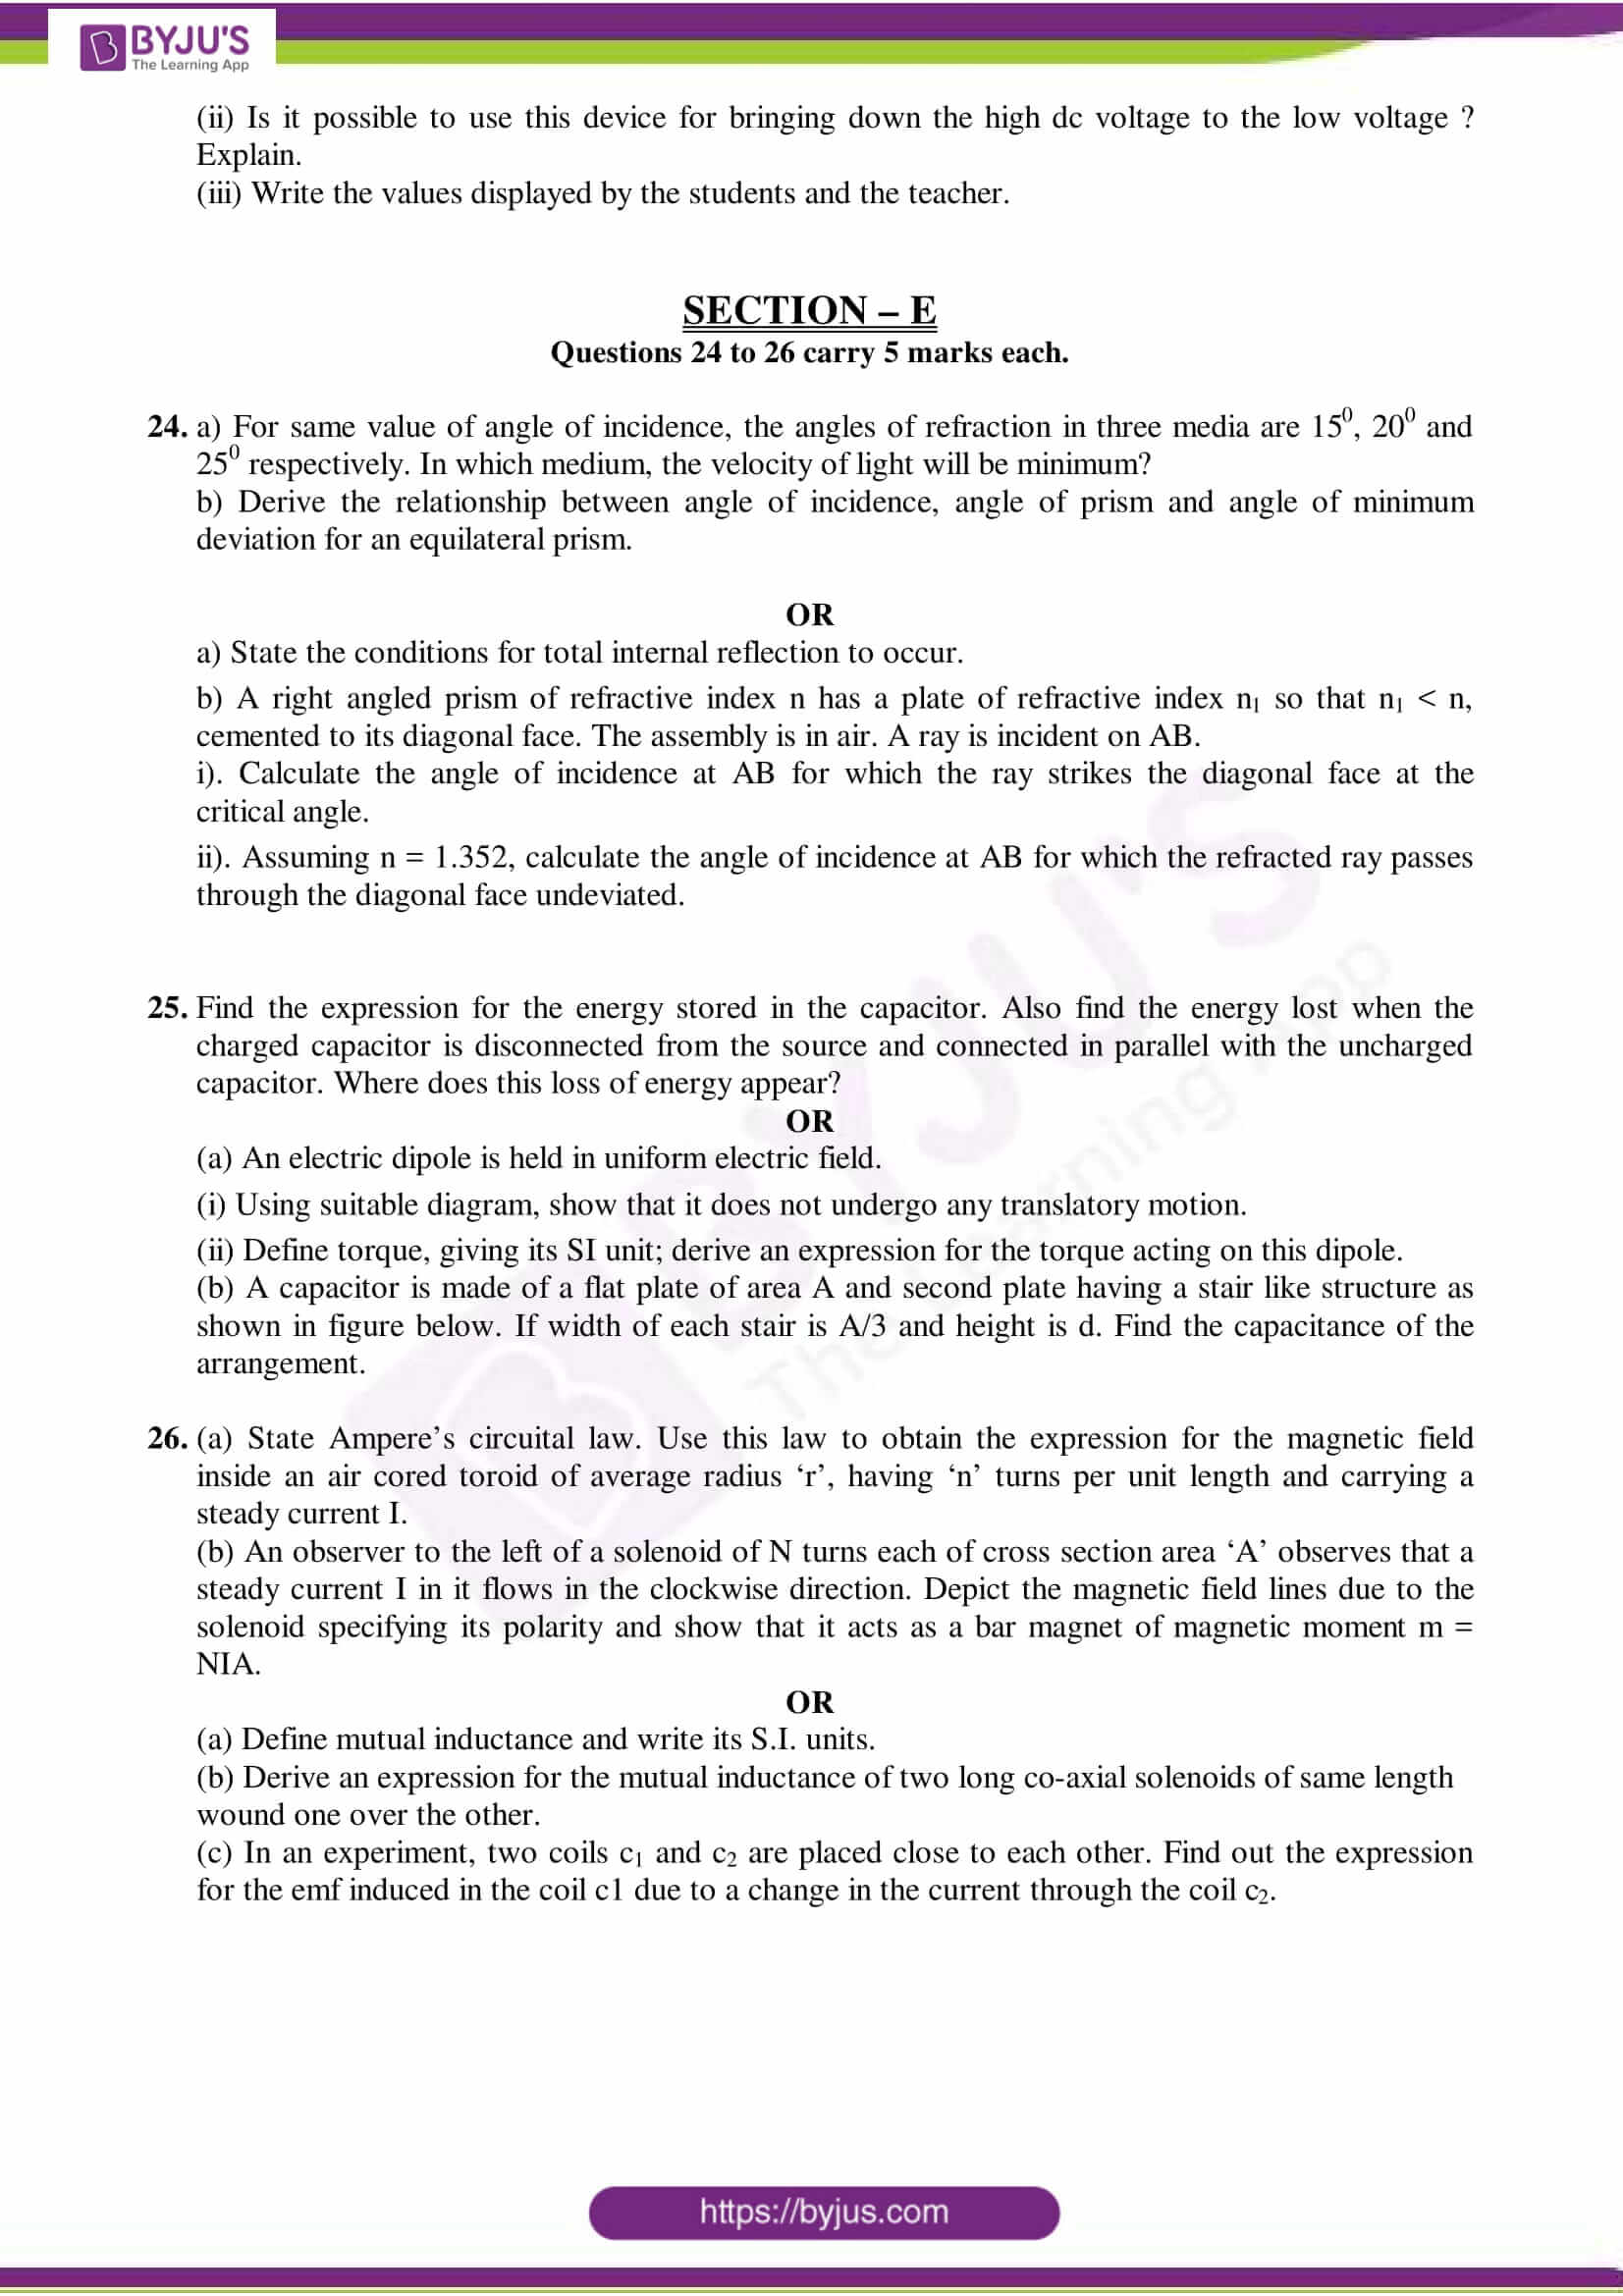 cbse class 12 physics sample paper set 10